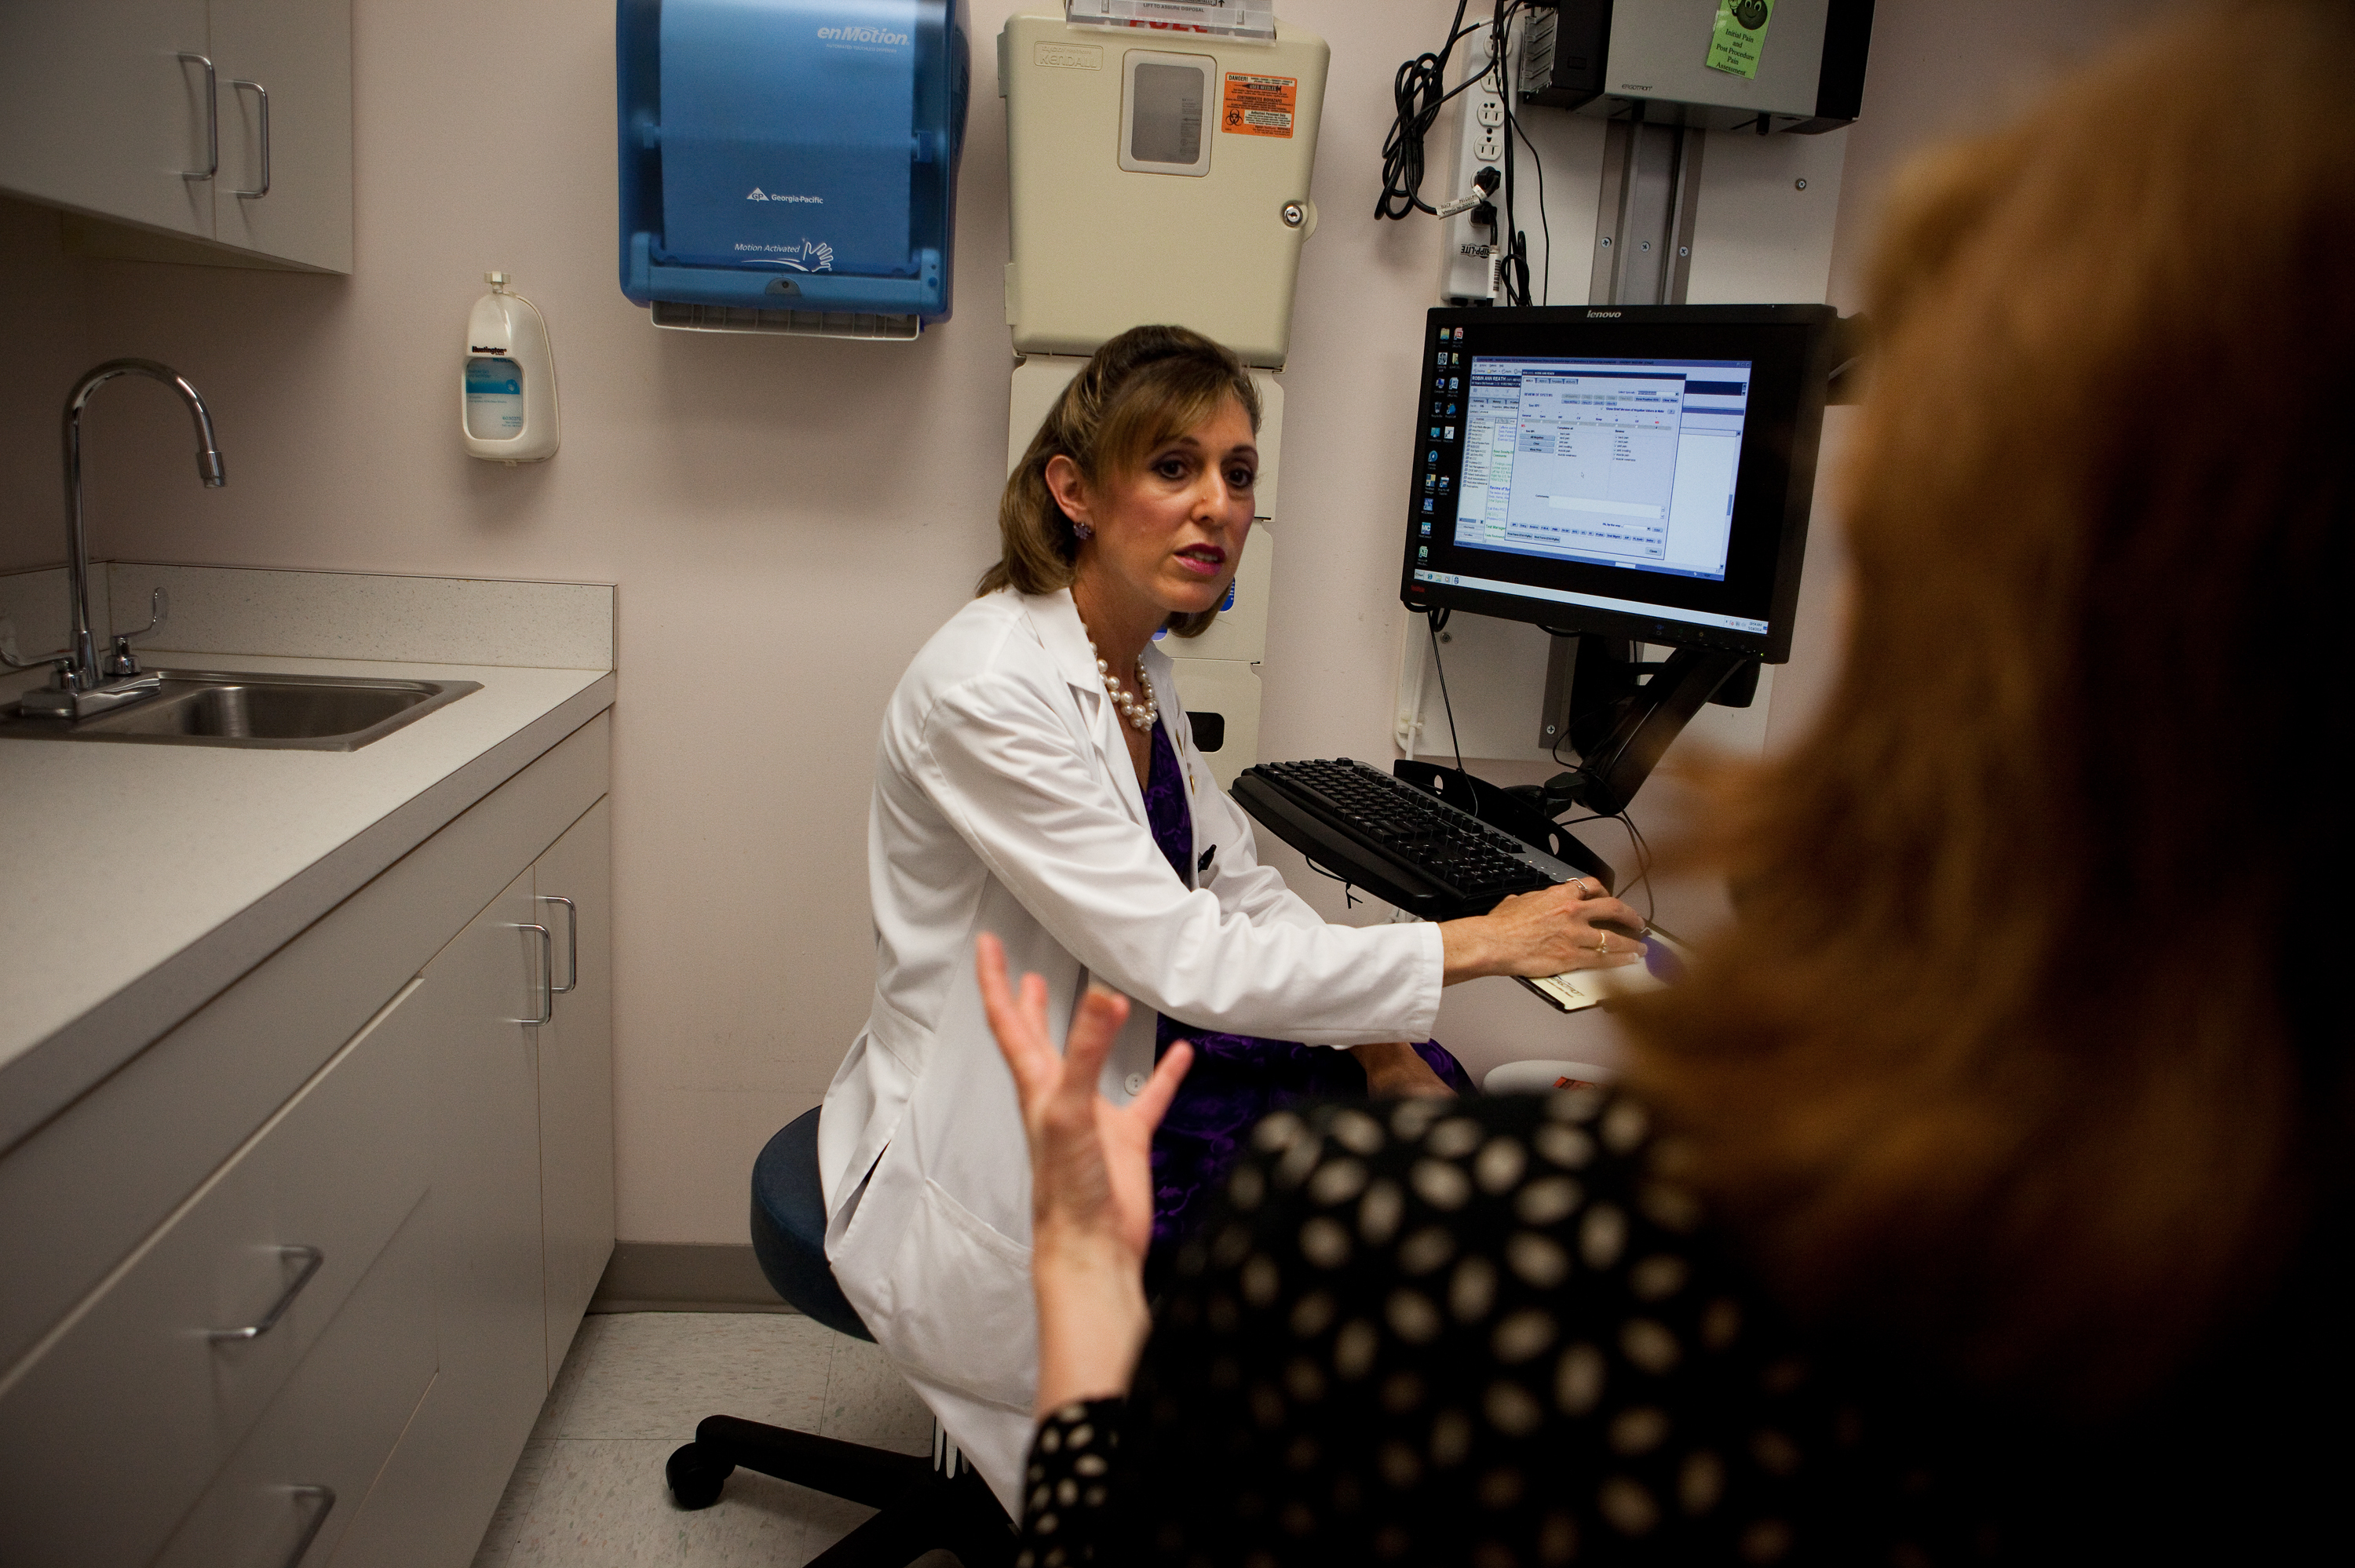 Should HPV Testing Replace The Pap Smear?